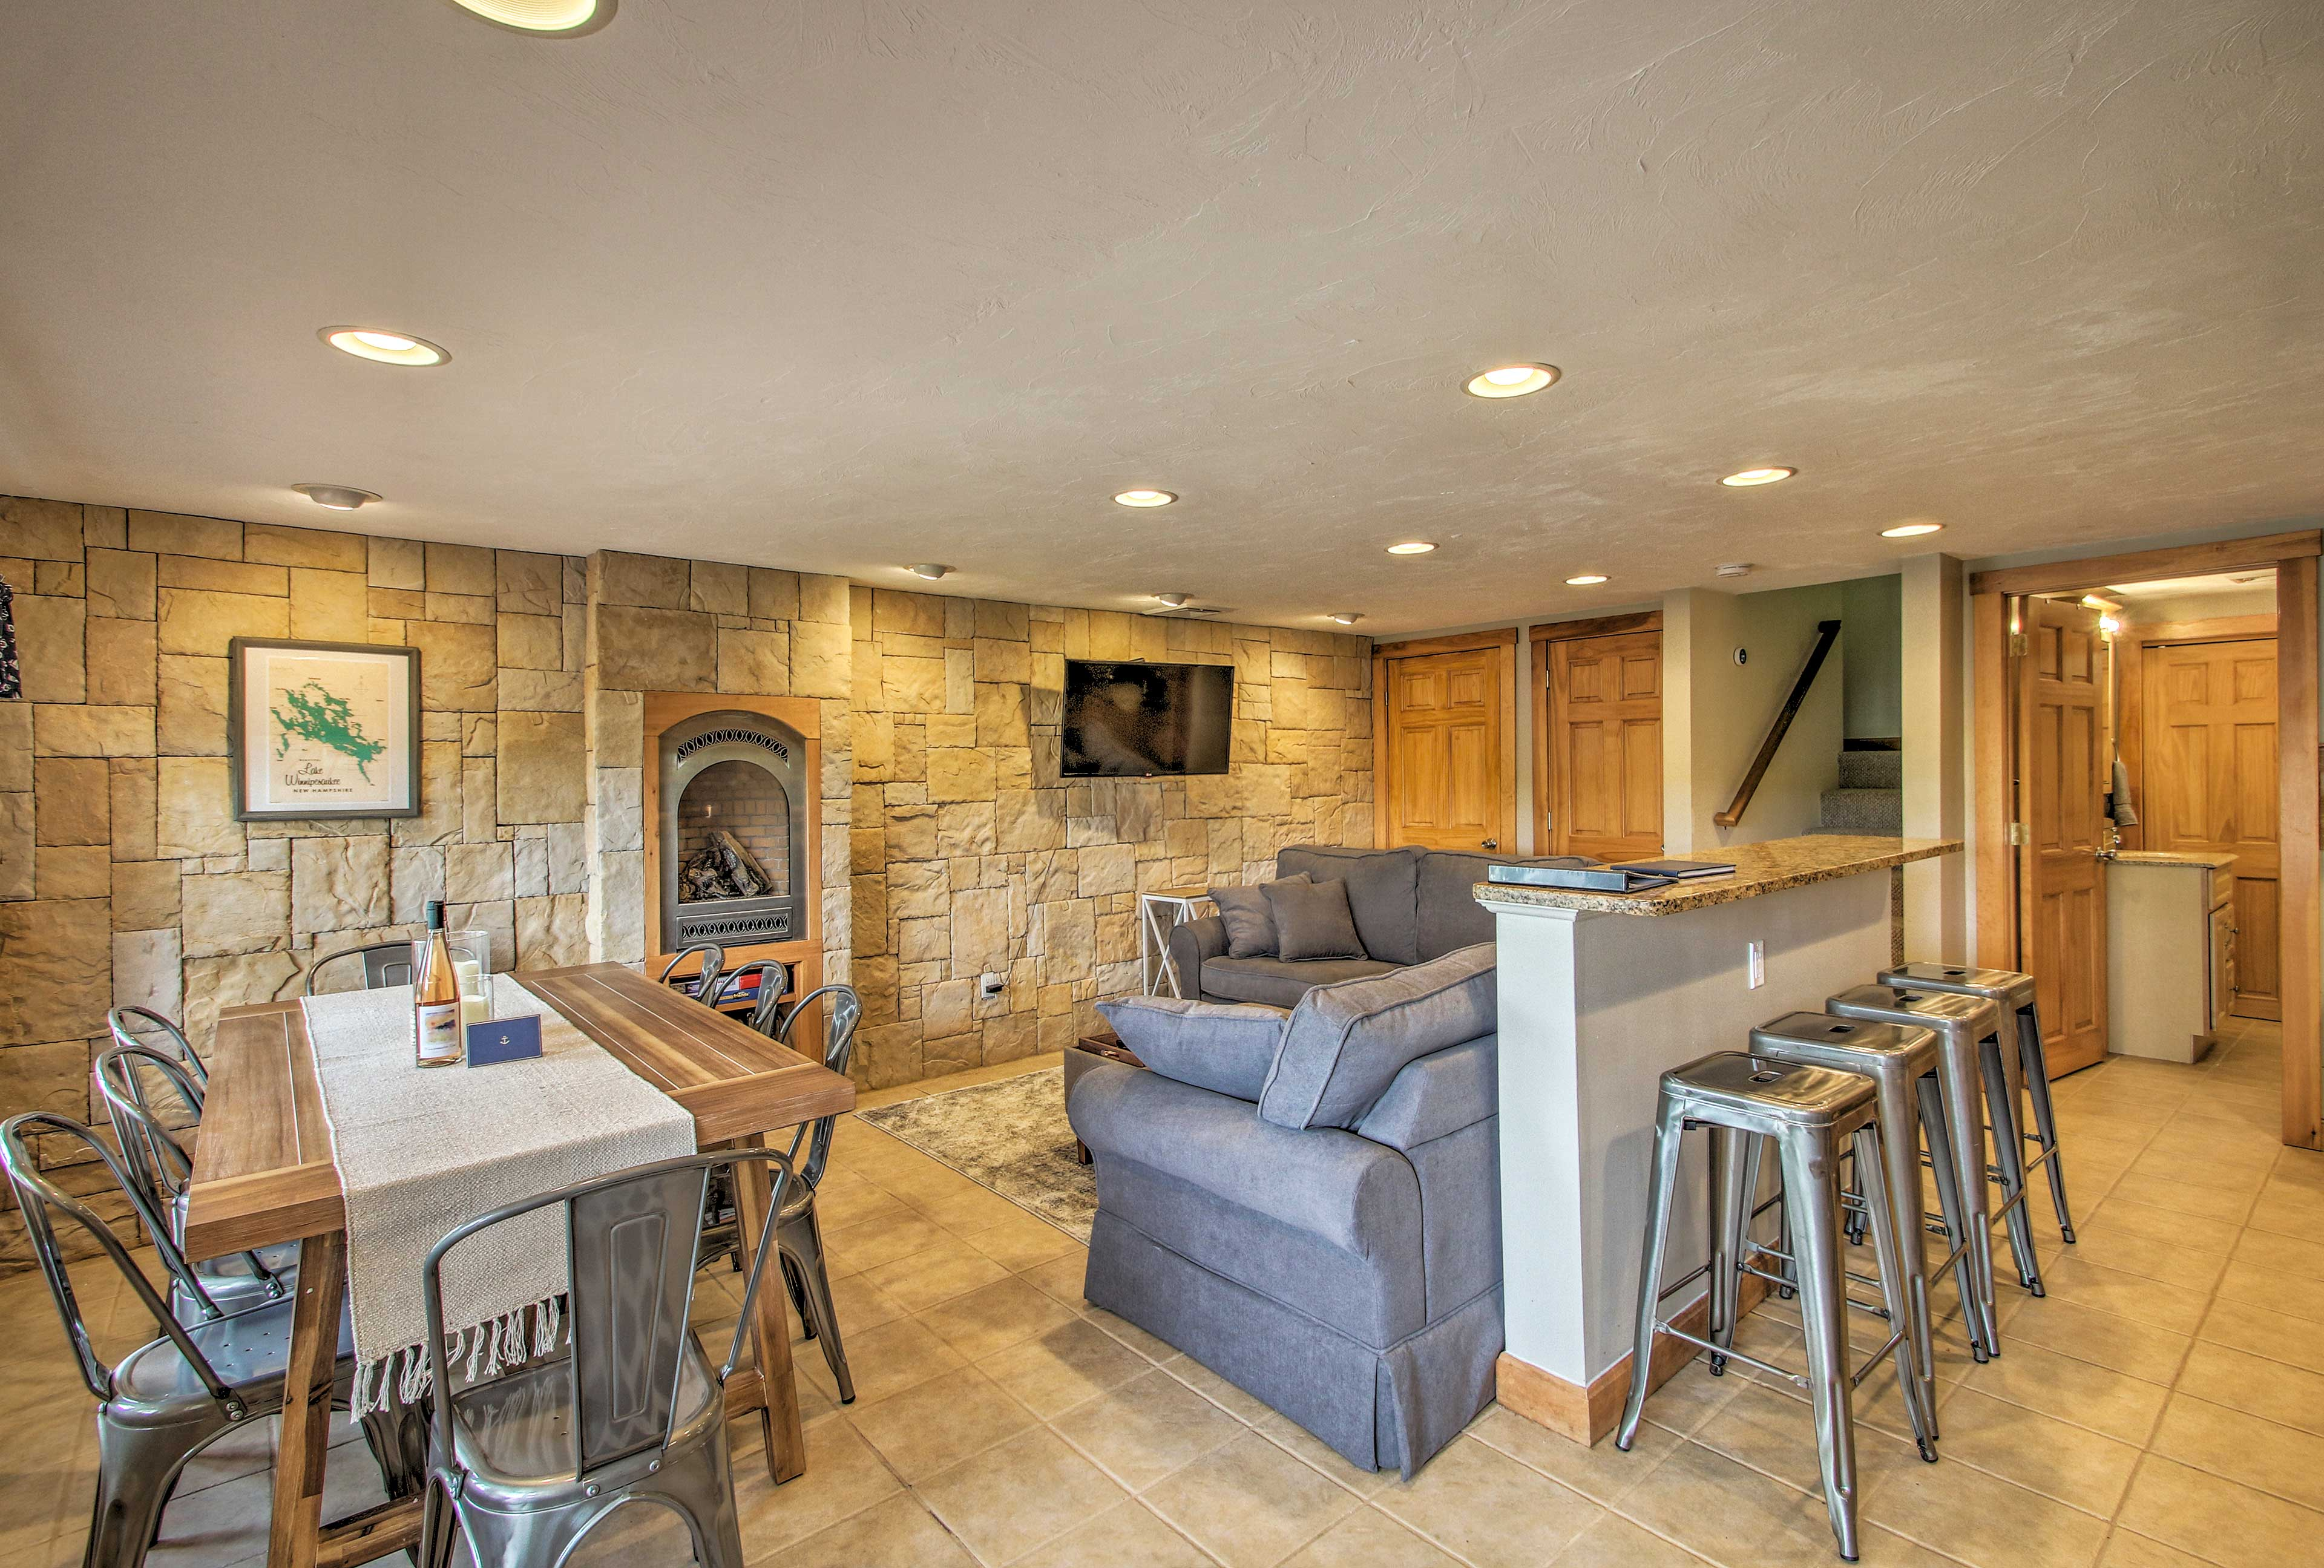 Cozy up in this Laconia vacation rental house during your New Hampshire retreat.